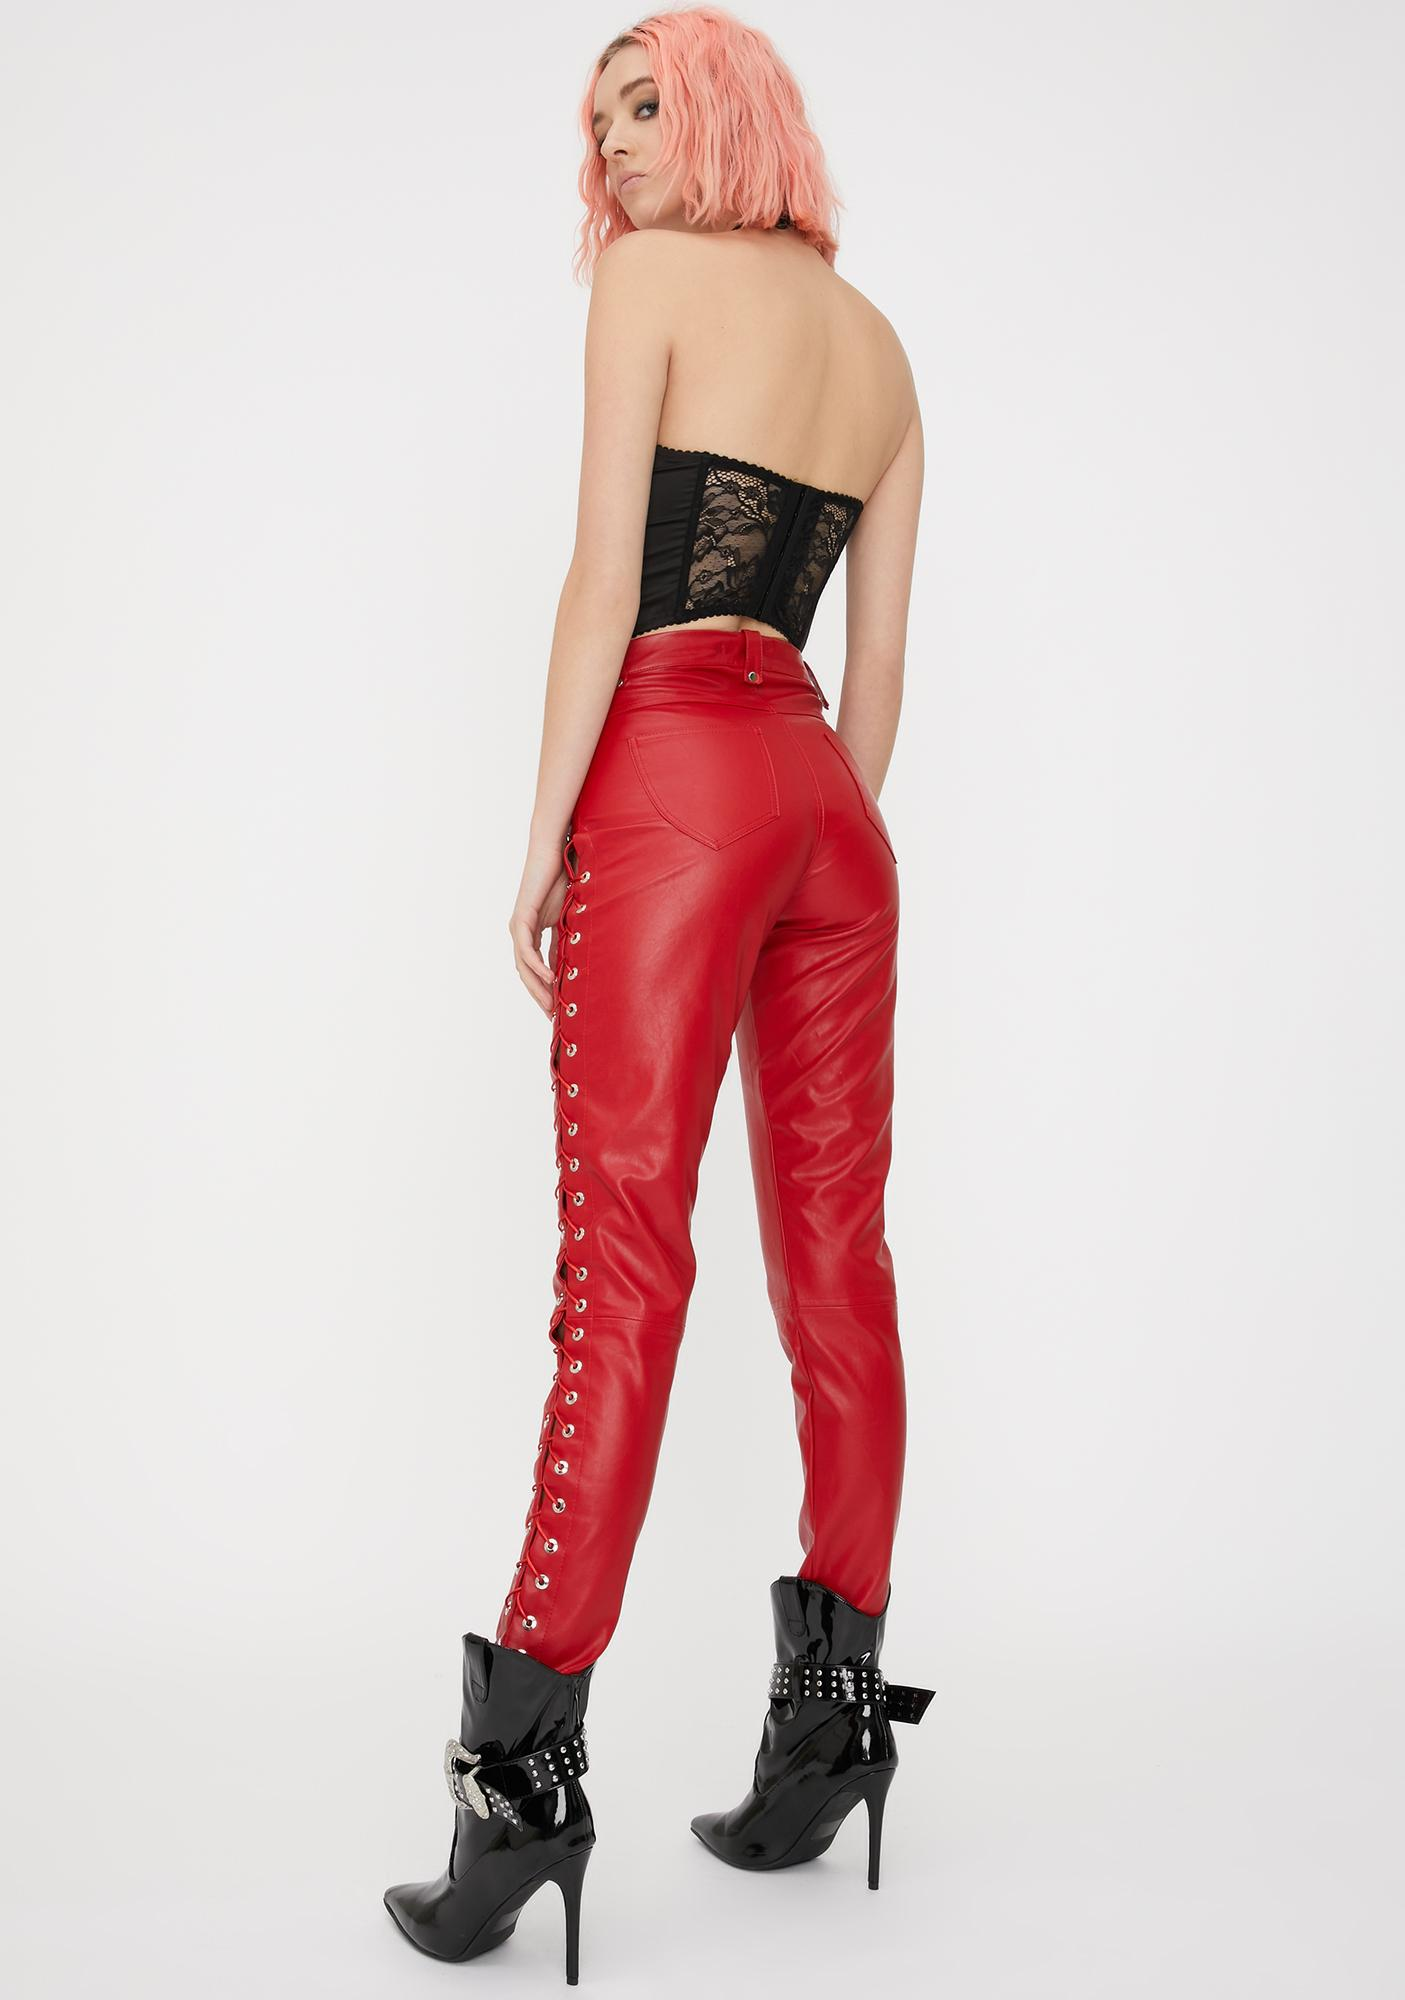 Kiki Riki Blaze Settle The Score Leather Pants